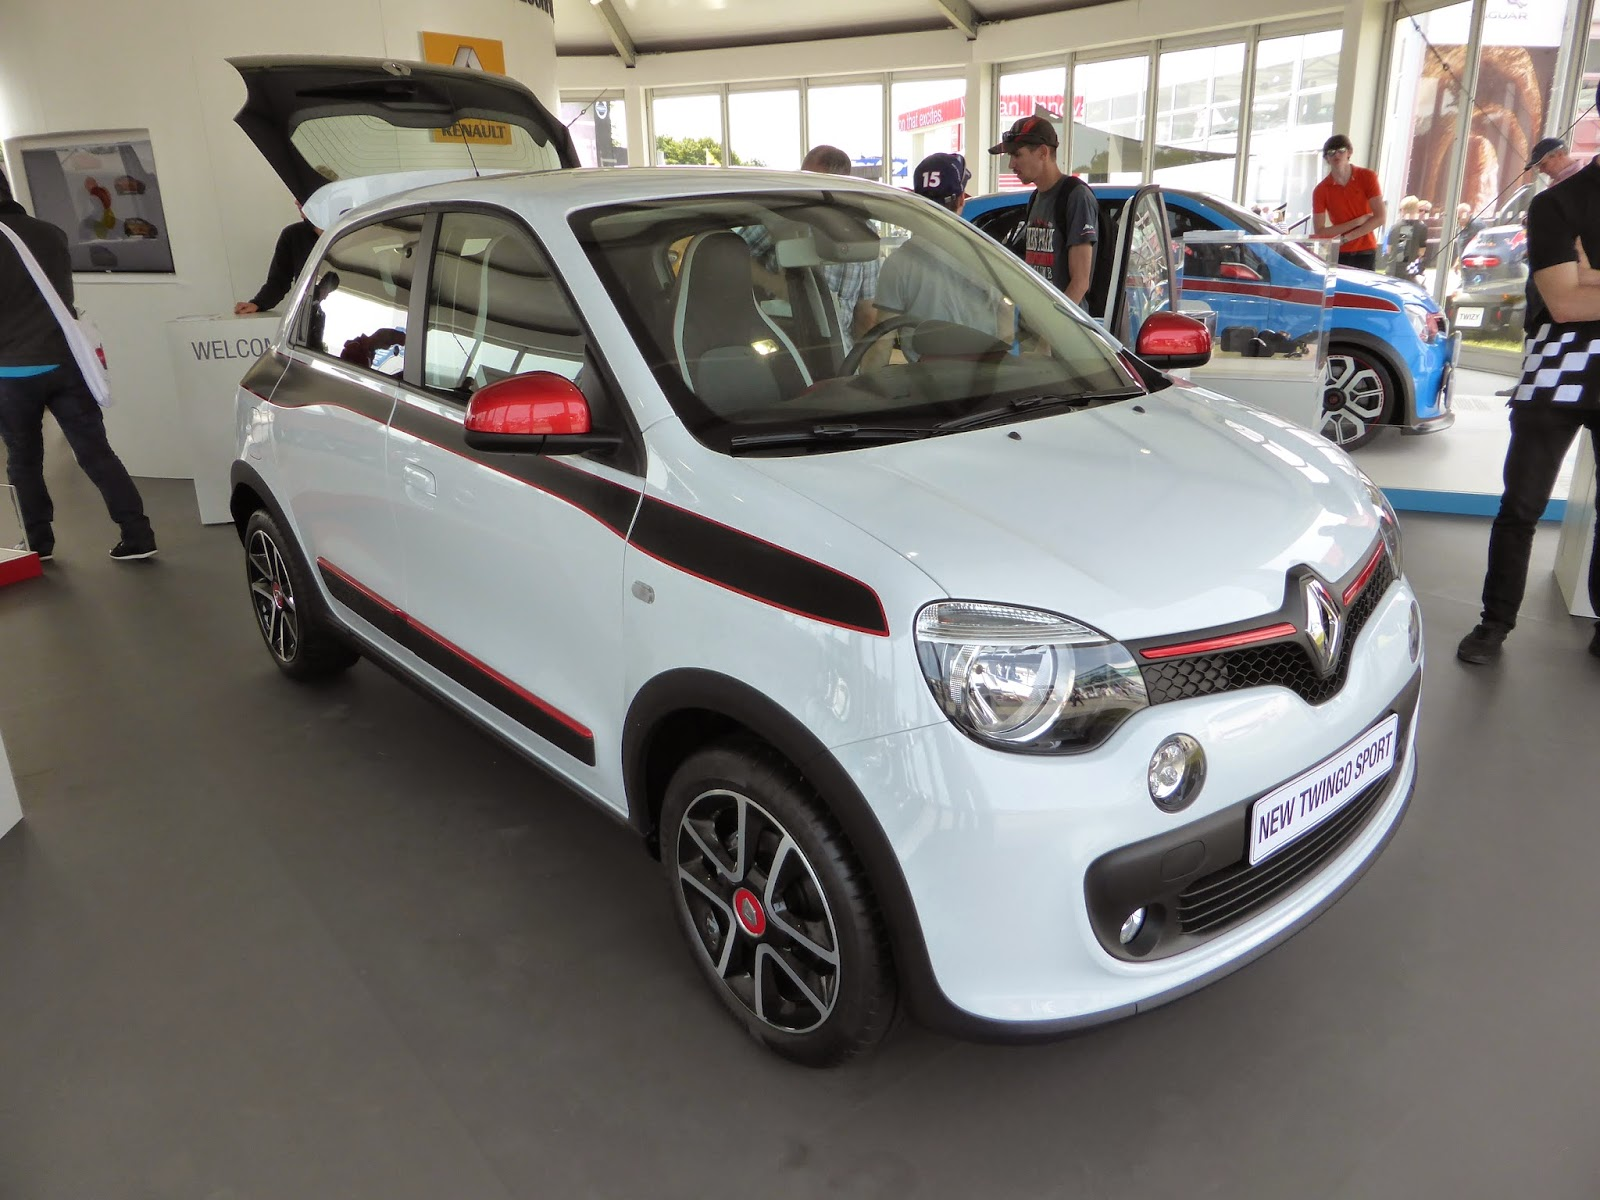 The new Renault Twingo may be a game changer for the small car market